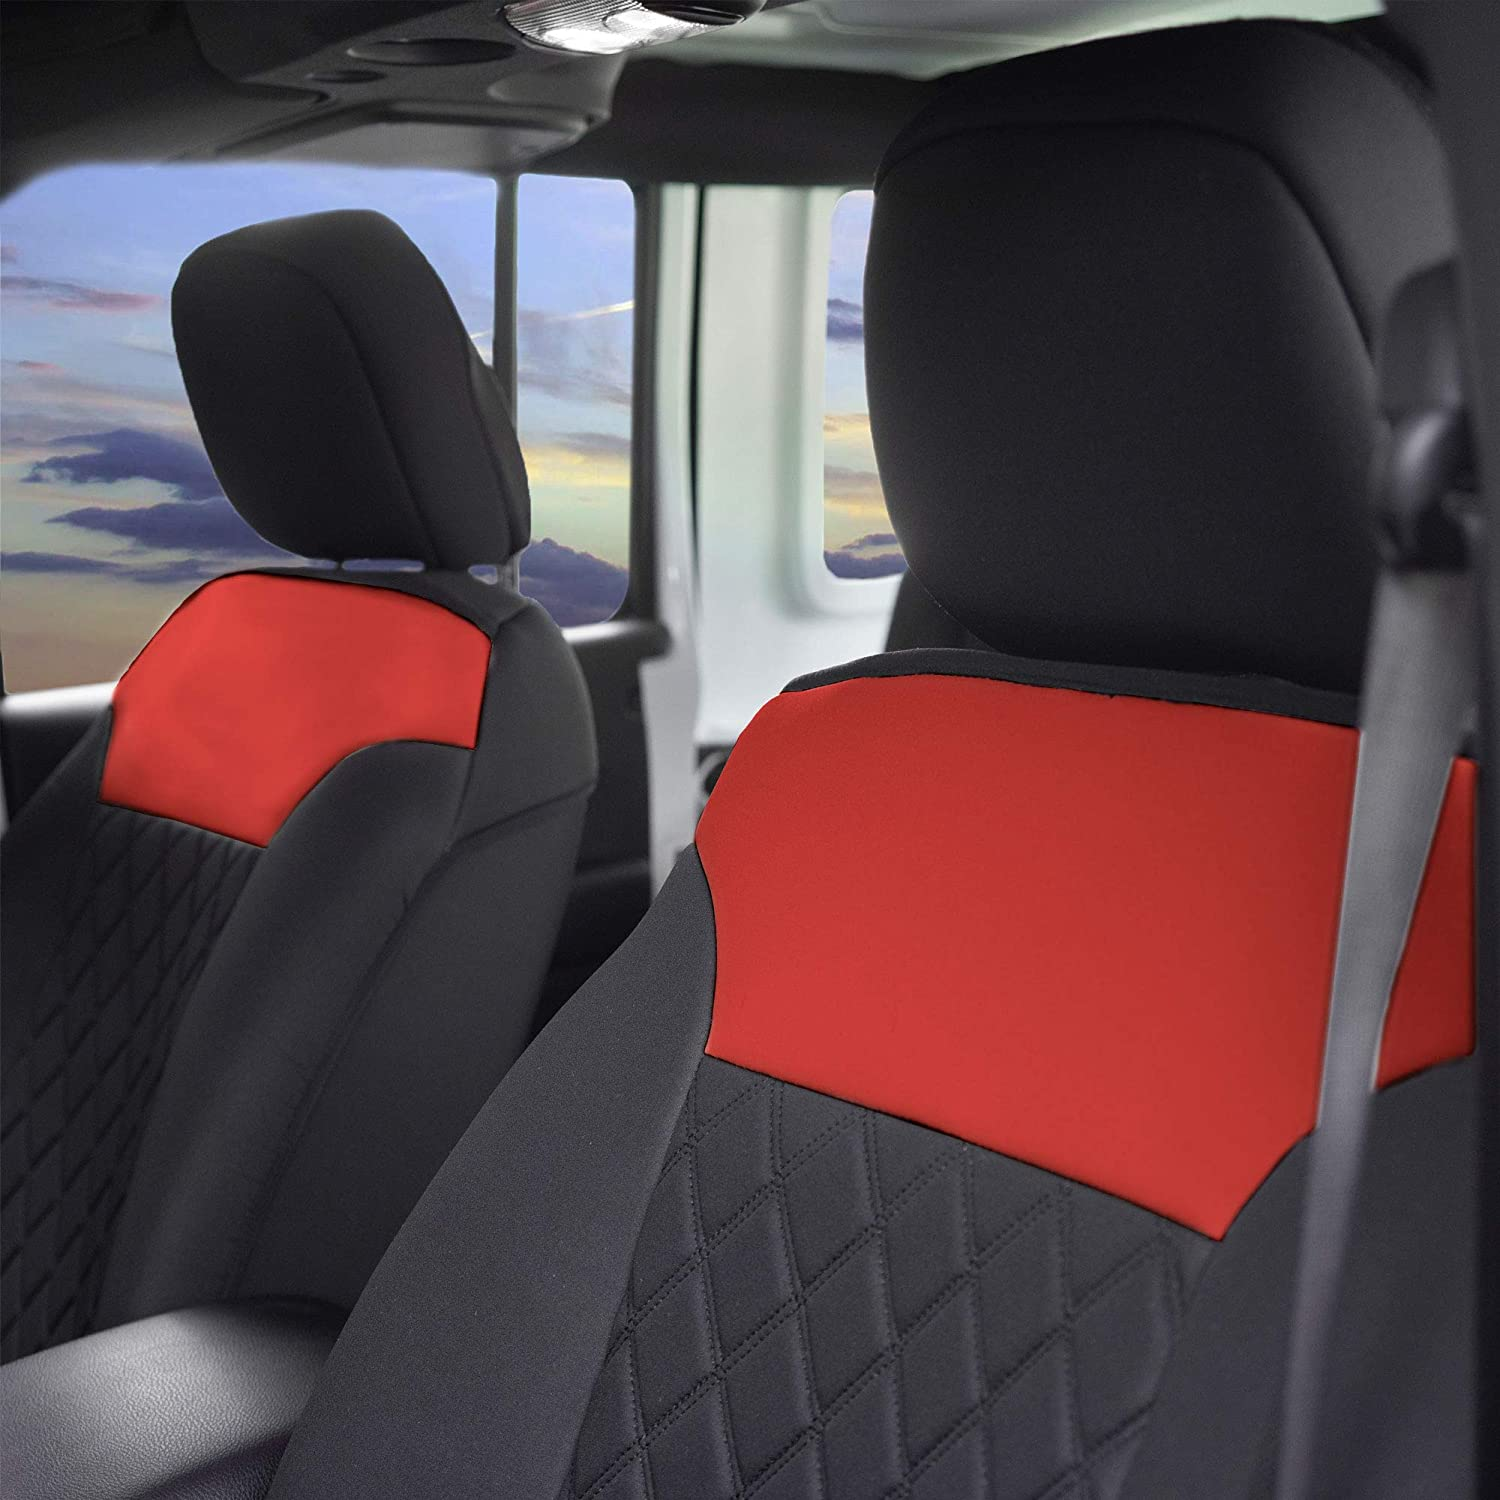 Easy Installation Water Resistant Non-Slip Backing FH Group Red//Black FB089REDBLACK102 Neosupreme Car Seat Cushion Set of Two Front Bucket Covers Quality